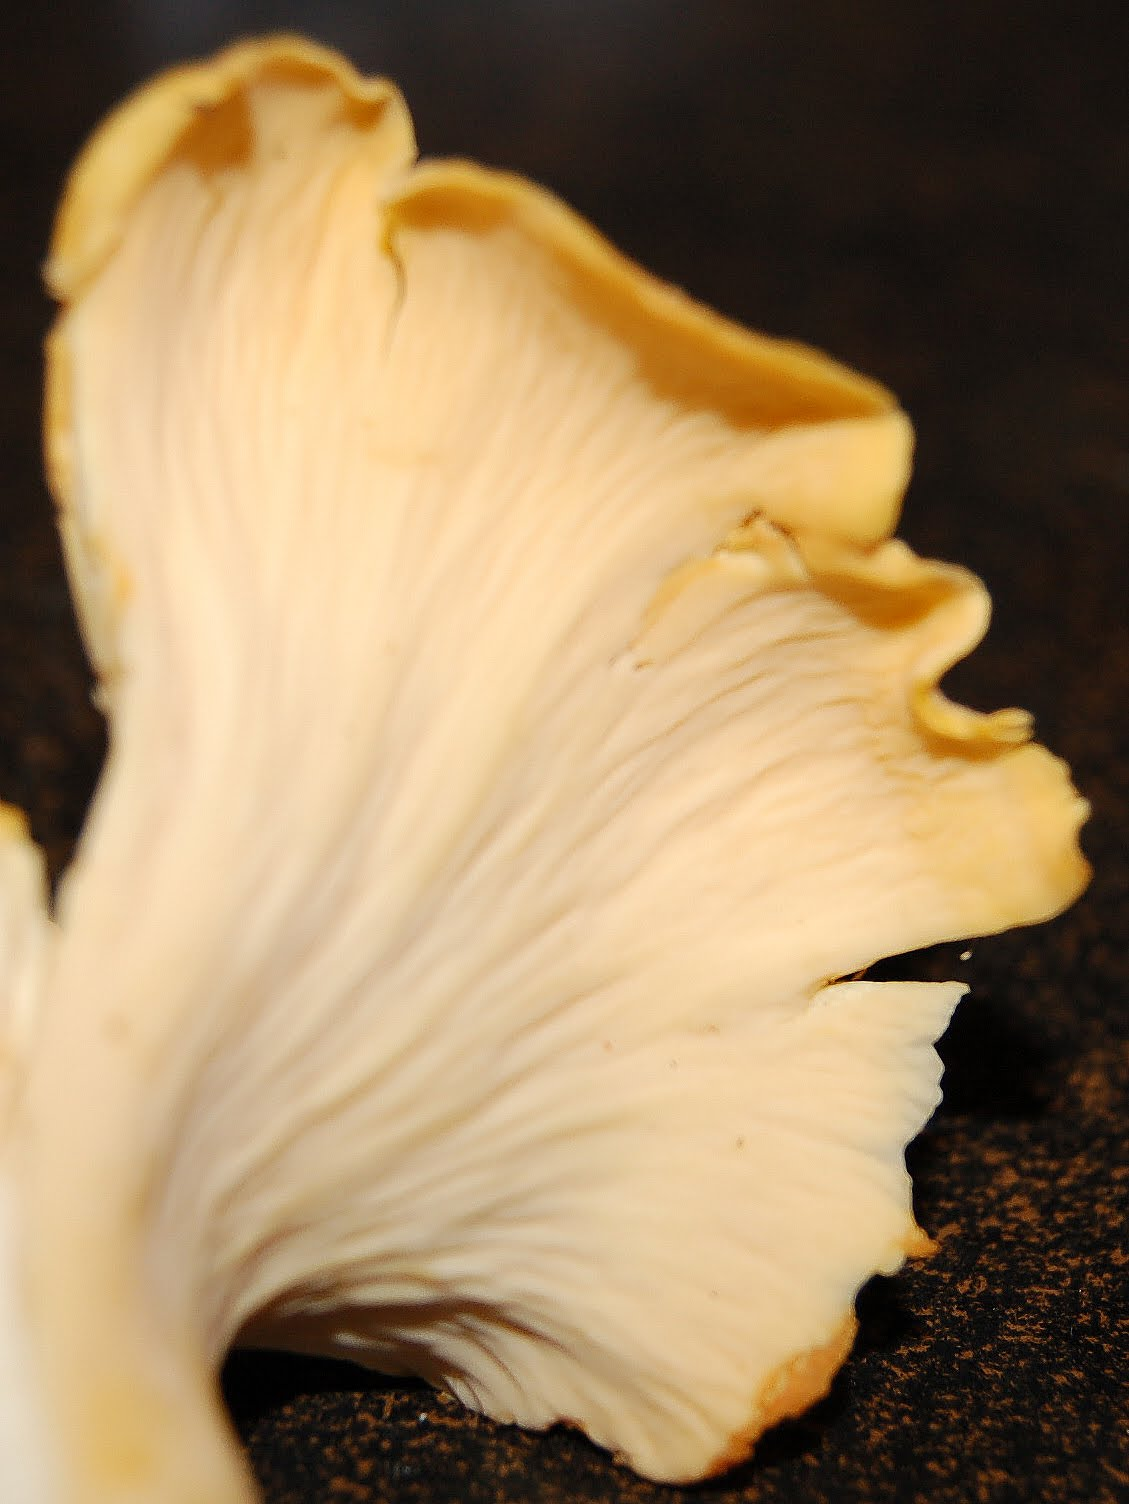 Chanterelle mushrooms, white, oyster mushrooms - step by step cooking recipes 82